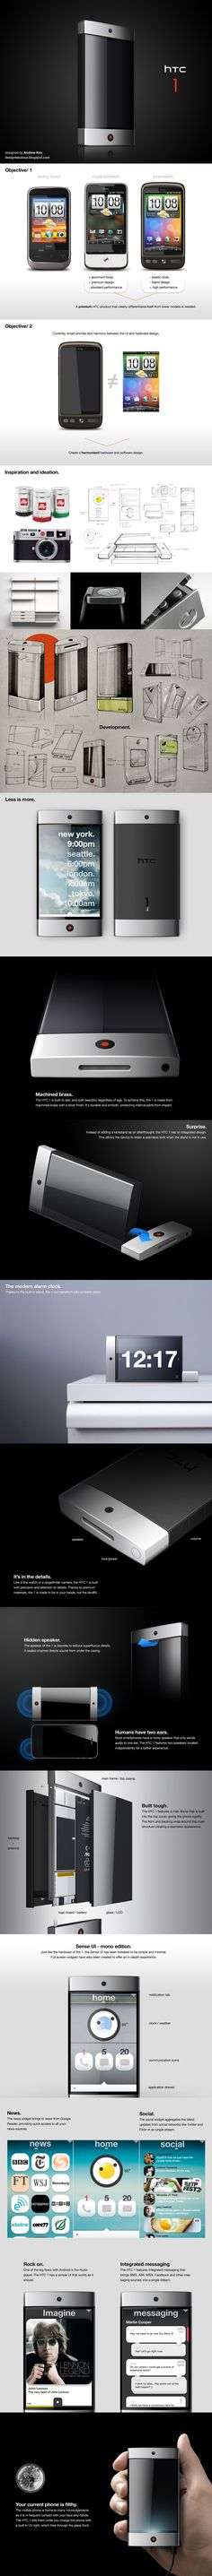 best phone design ever